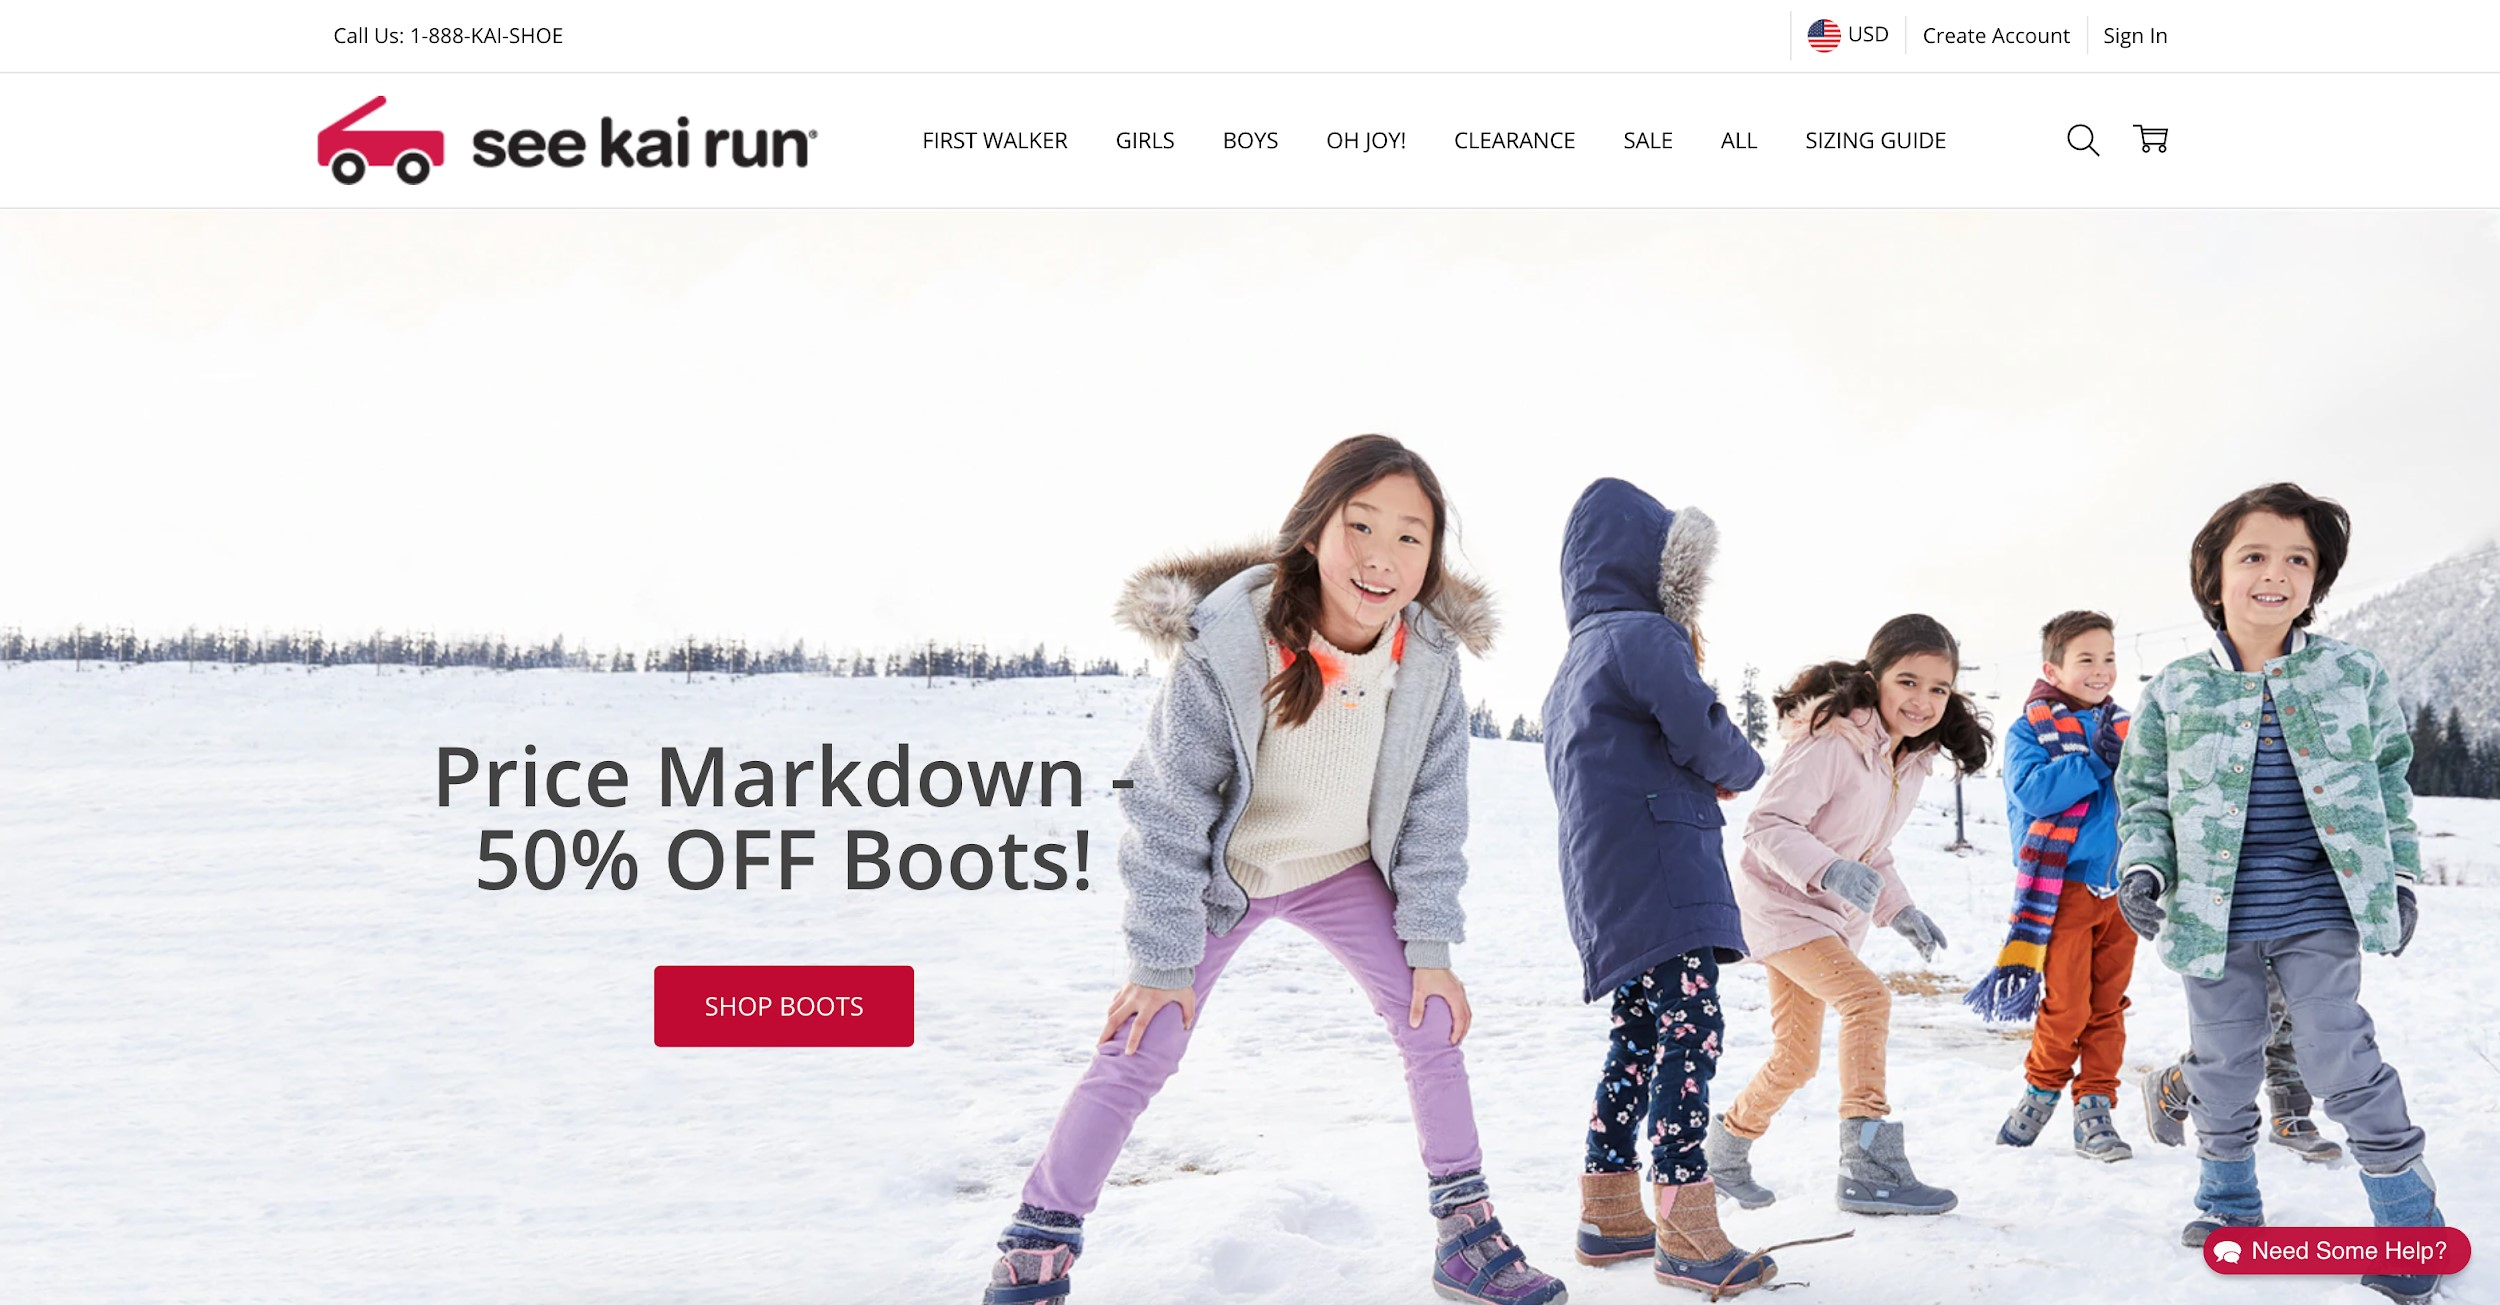 see kai run best ecommerce sites